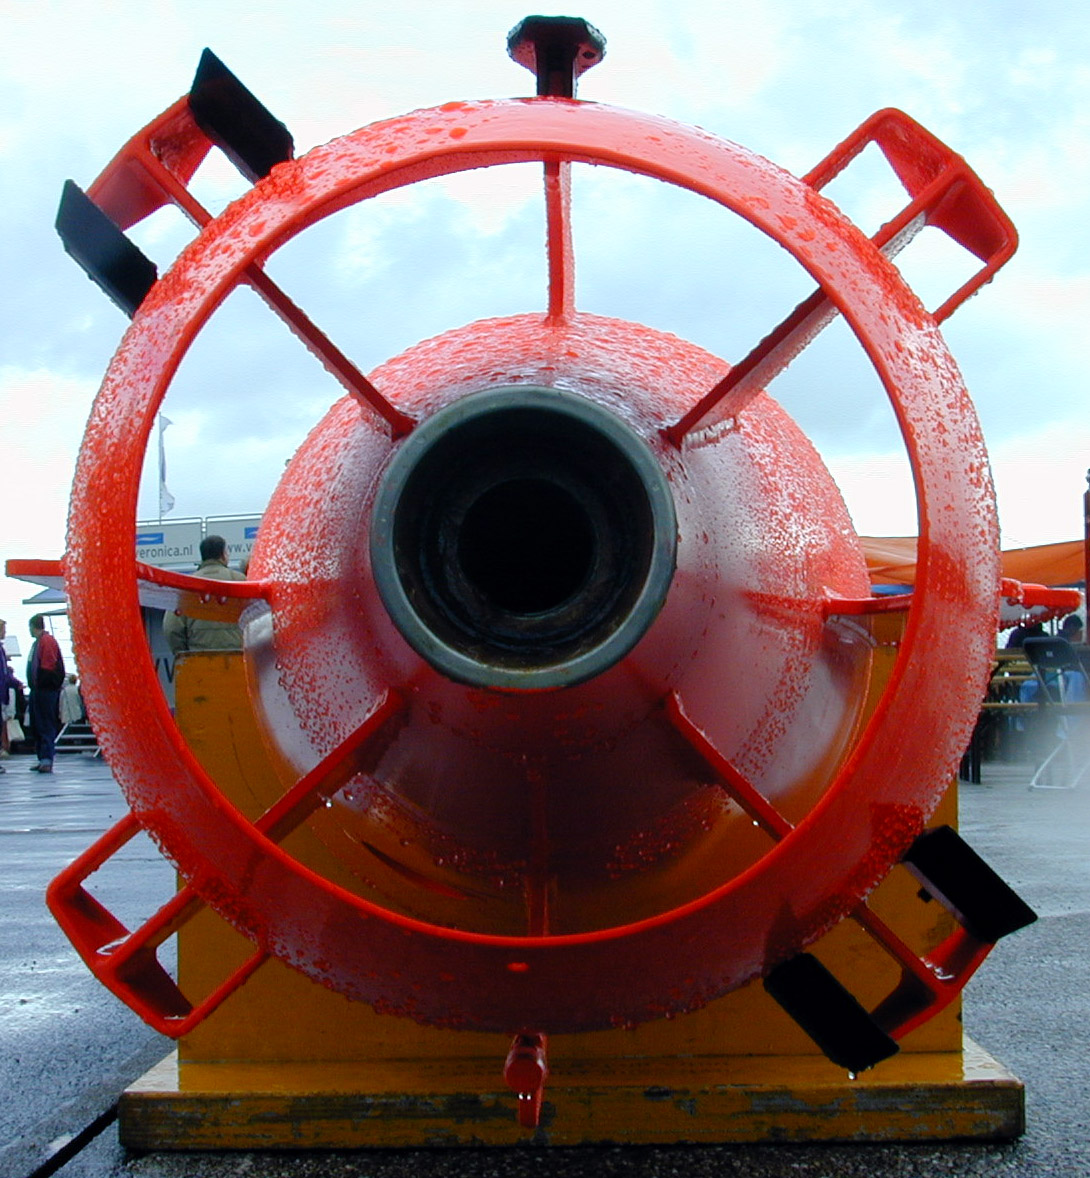 submarine engine back red metal thingy